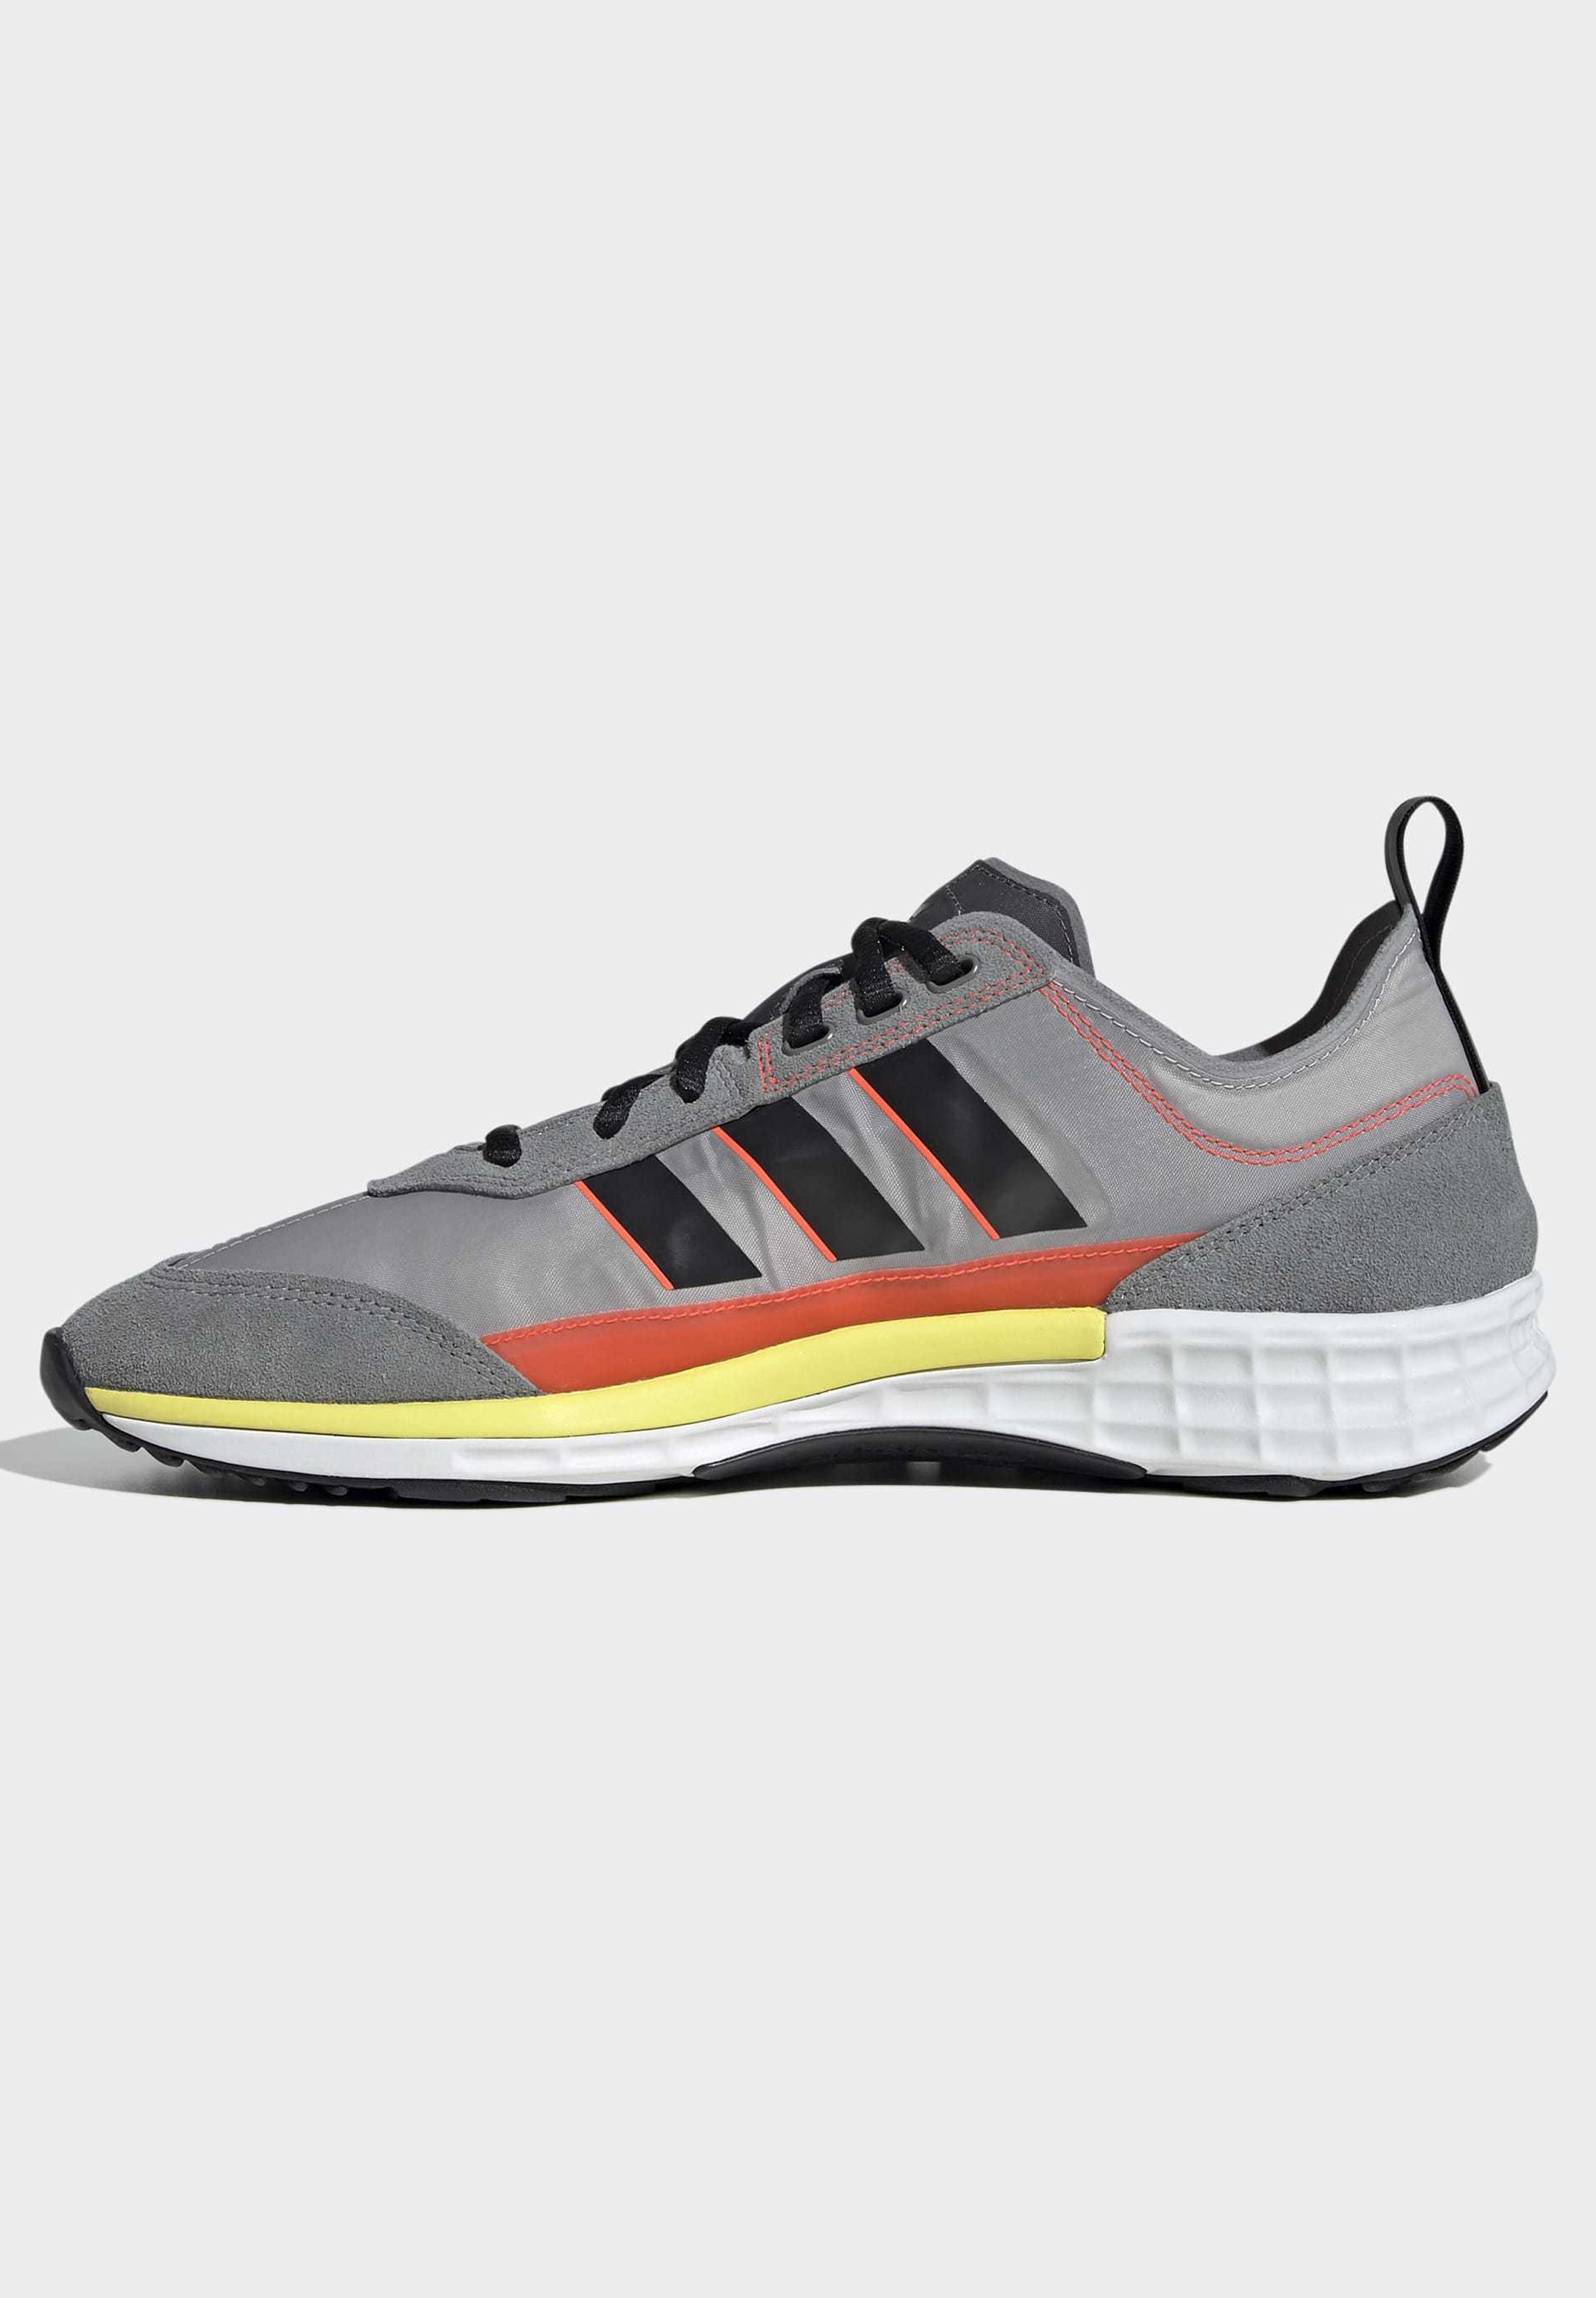 Adidas Originals Sl 7200 Shoes - Sneakers Grey